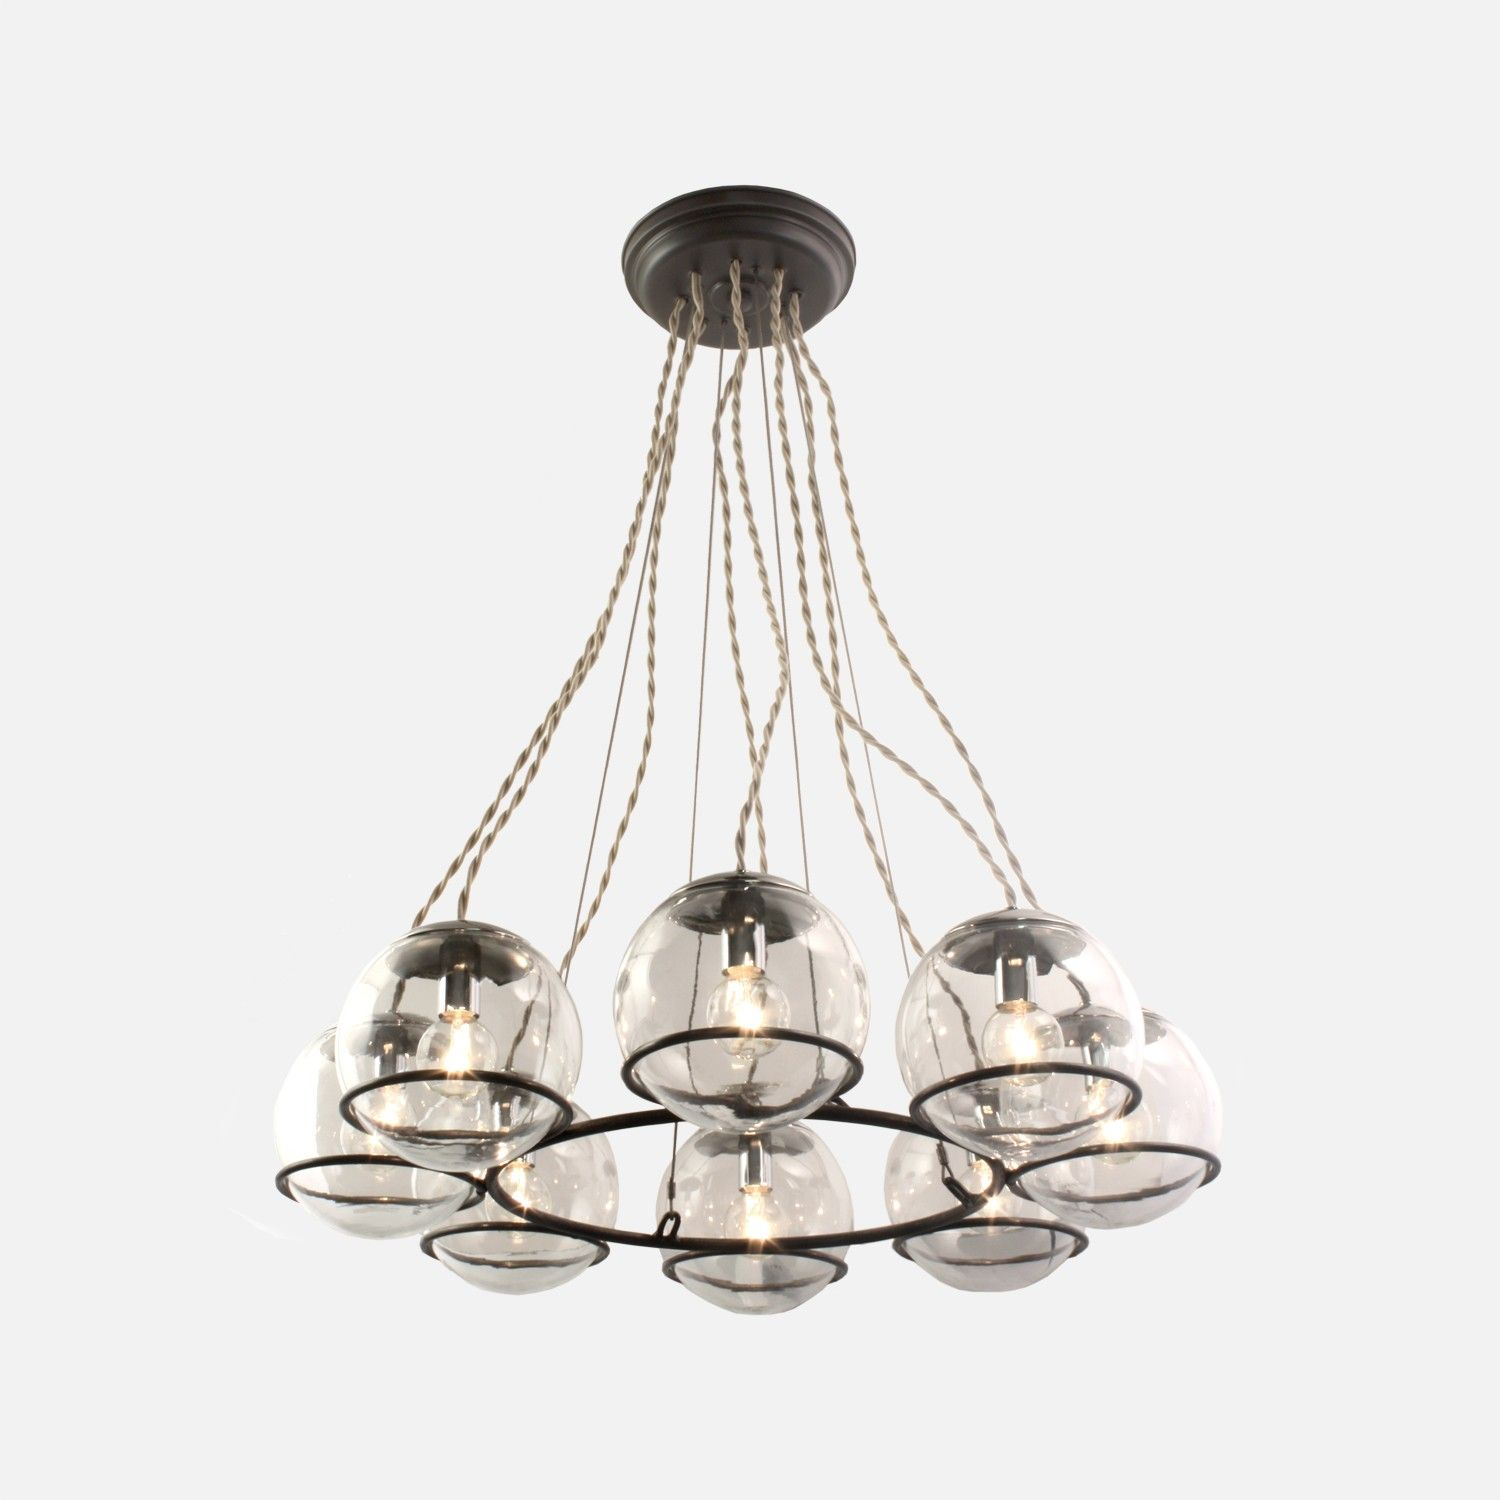 Orbit Chandelier Light Fixture